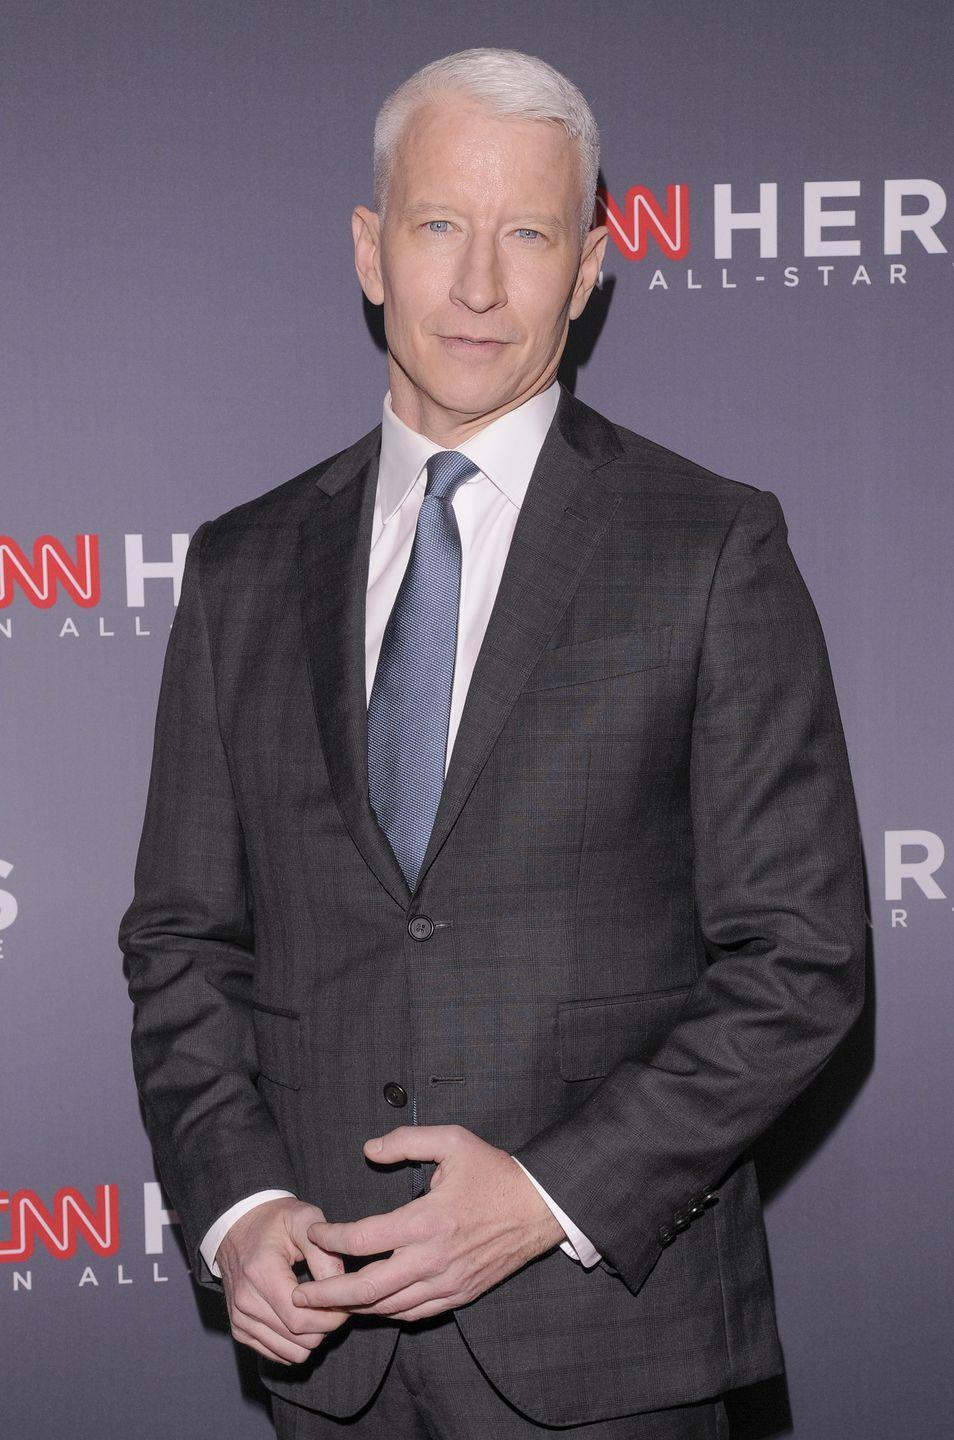 "<p>Cooper says in his 30s he was salt and pepper and now at 52, he can't find the pepper anymore. Even though most know the TV personality for his silver style, he <a href=""https://people.com/style/anderson-cooper-is-an-unwilling-silver-fox-i-wish-i-still-had-brown-hair/"" rel=""nofollow noopener"" target=""_blank"" data-ylk=""slk:says he misses his brown hair"" class=""link rapid-noclick-resp"">says he misses his brown hair</a>.</p>"